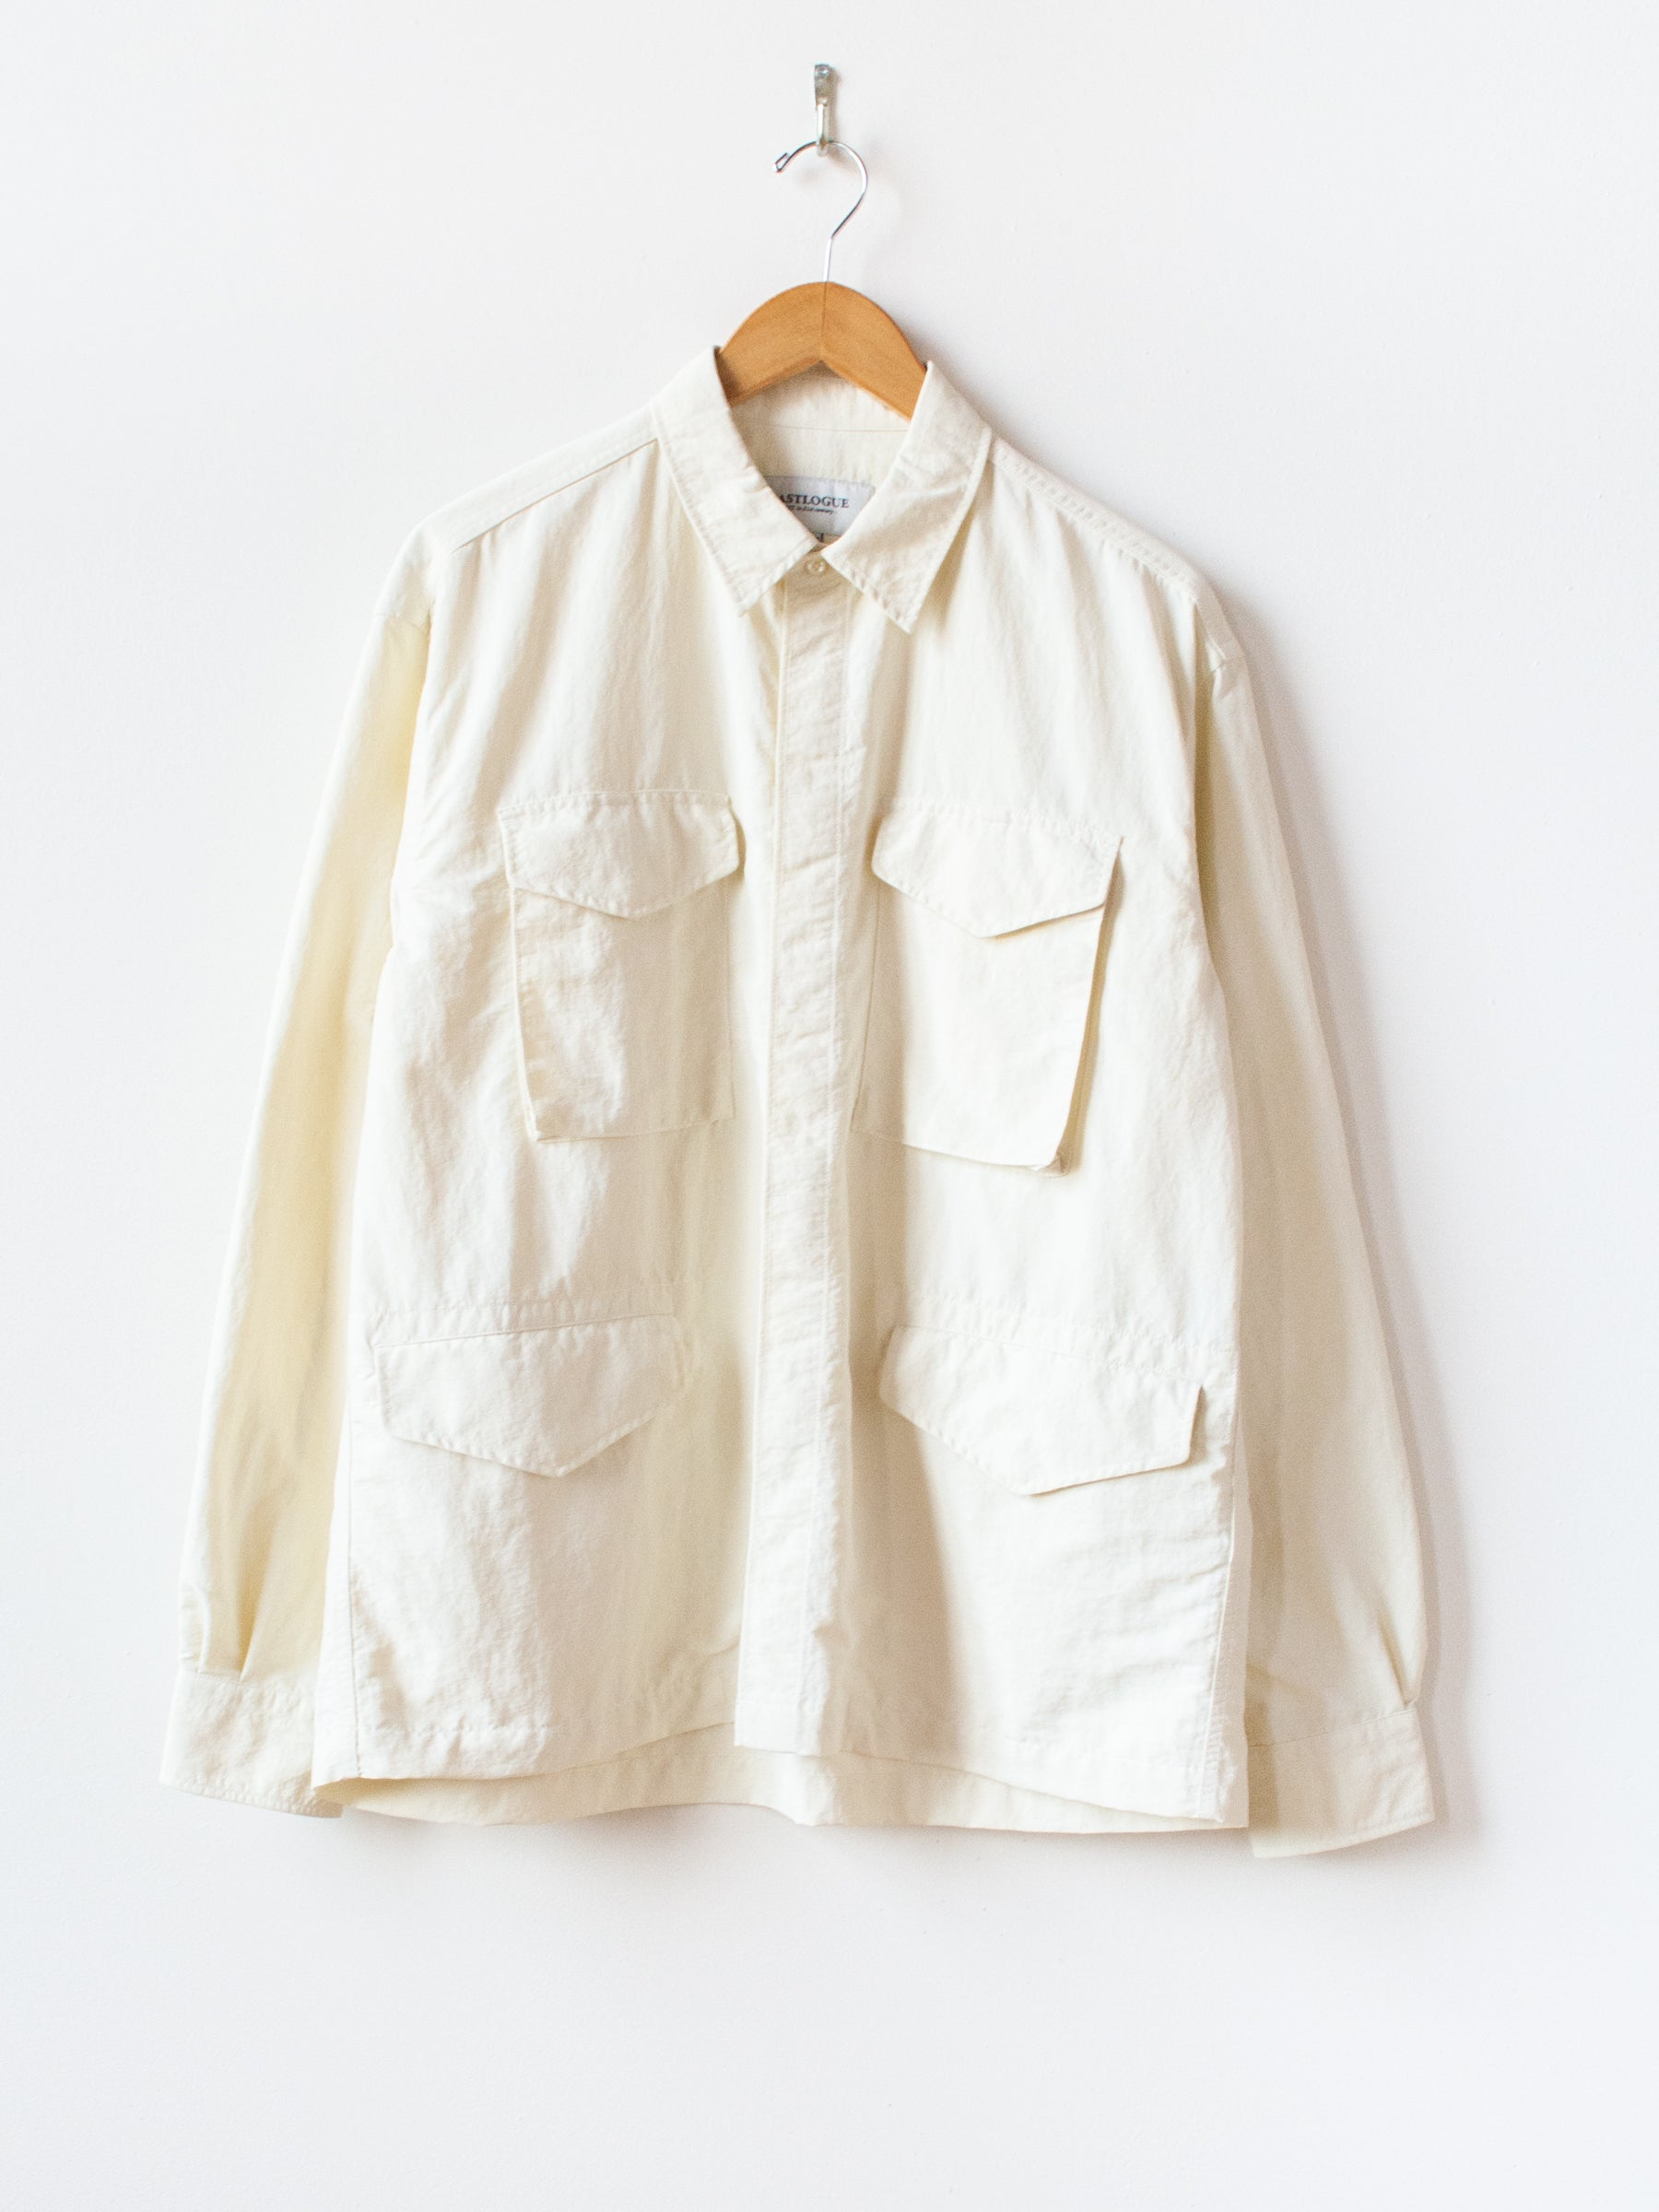 M65 Shirt - Off White Nylon Washer